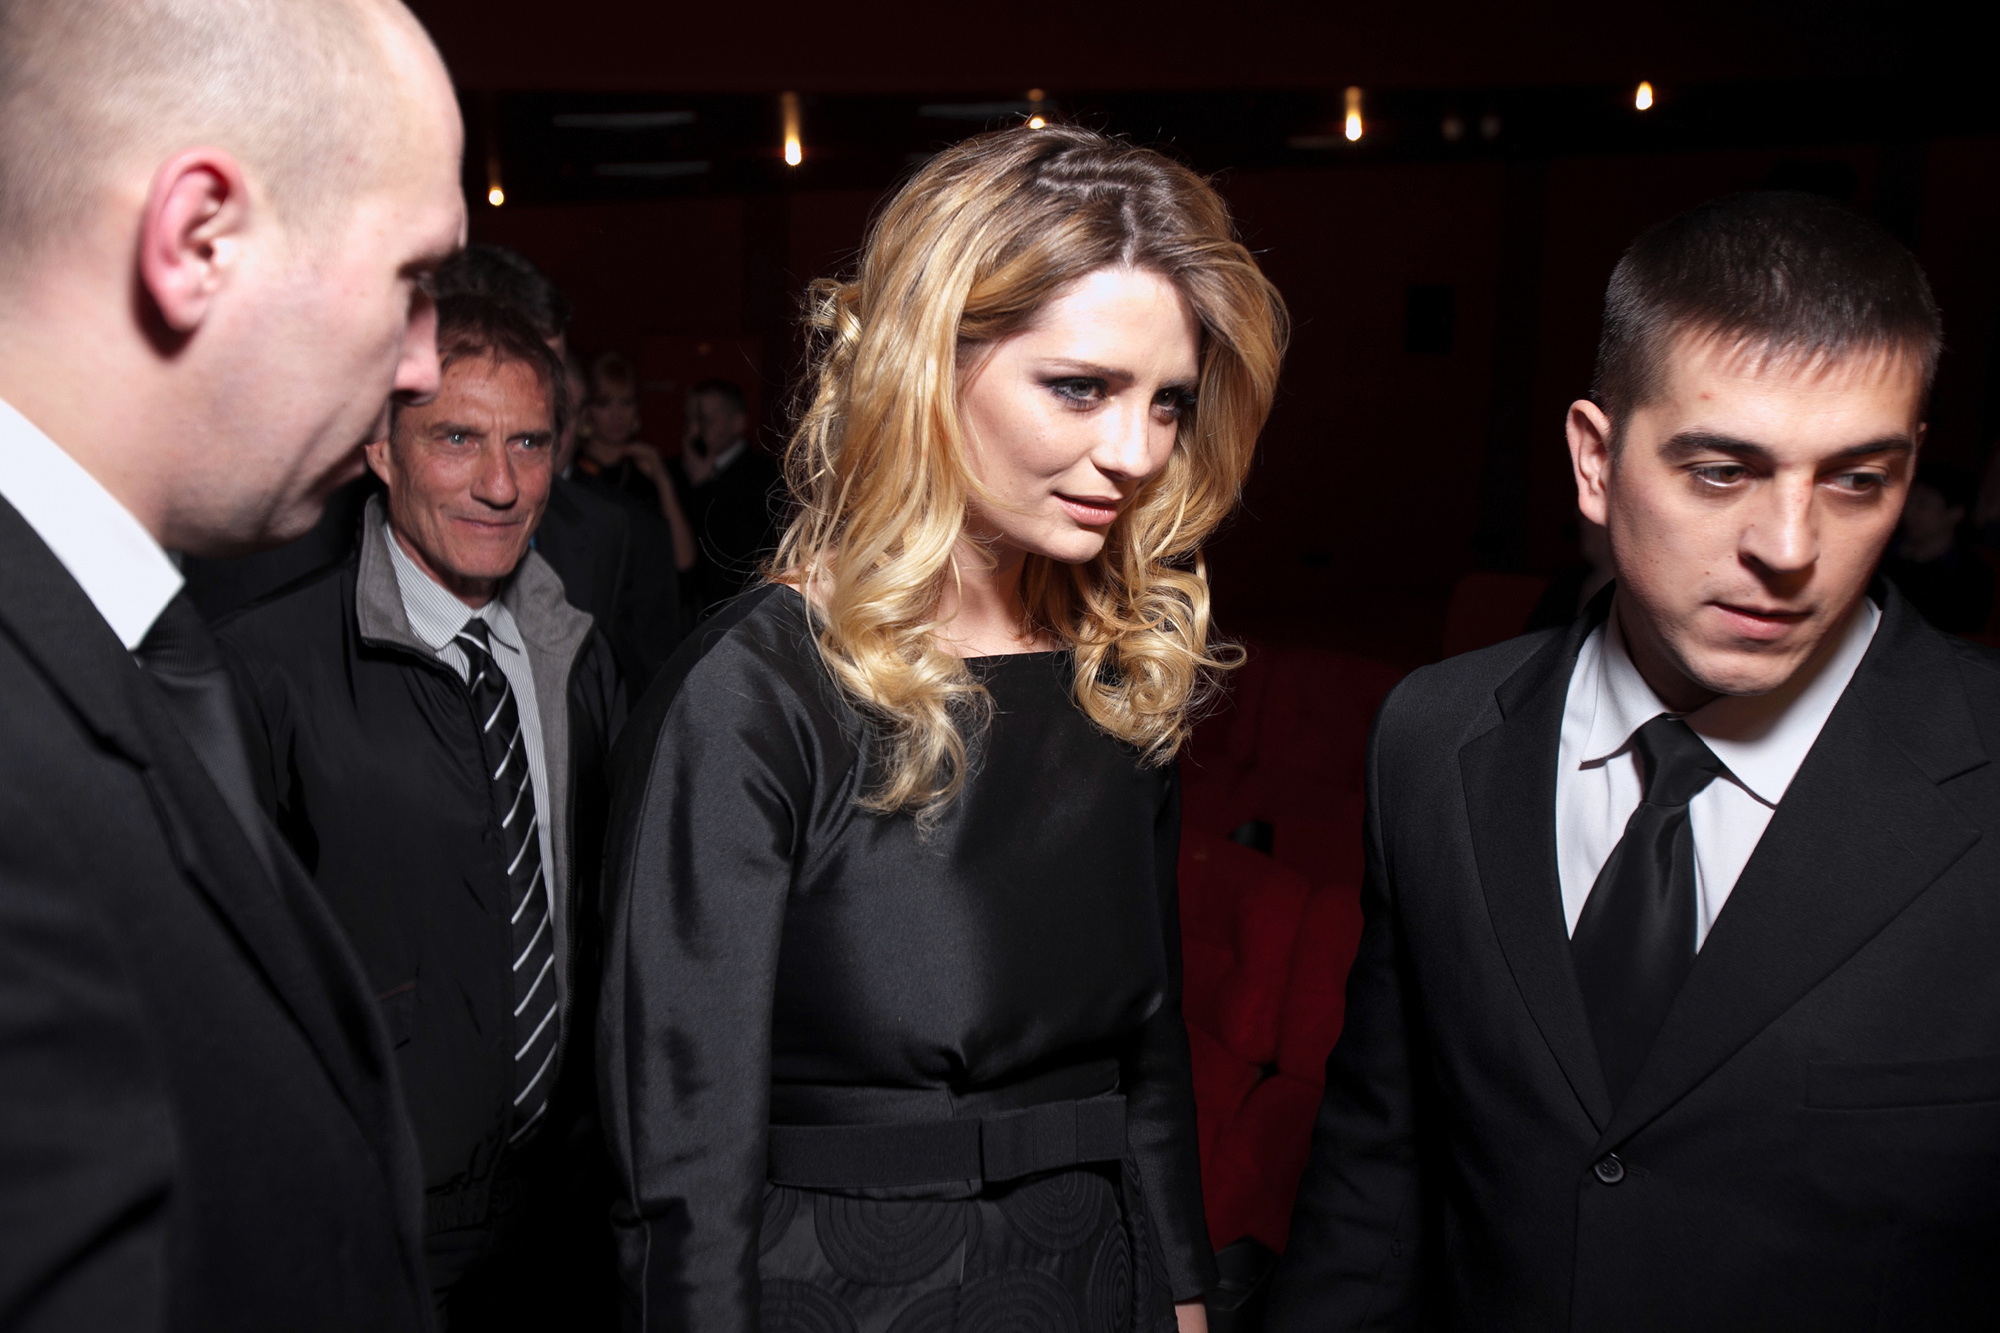 55950_Mischa_Barton_at_You_and_I_film_premiere_in_Moscow16_122_176lo.jpg